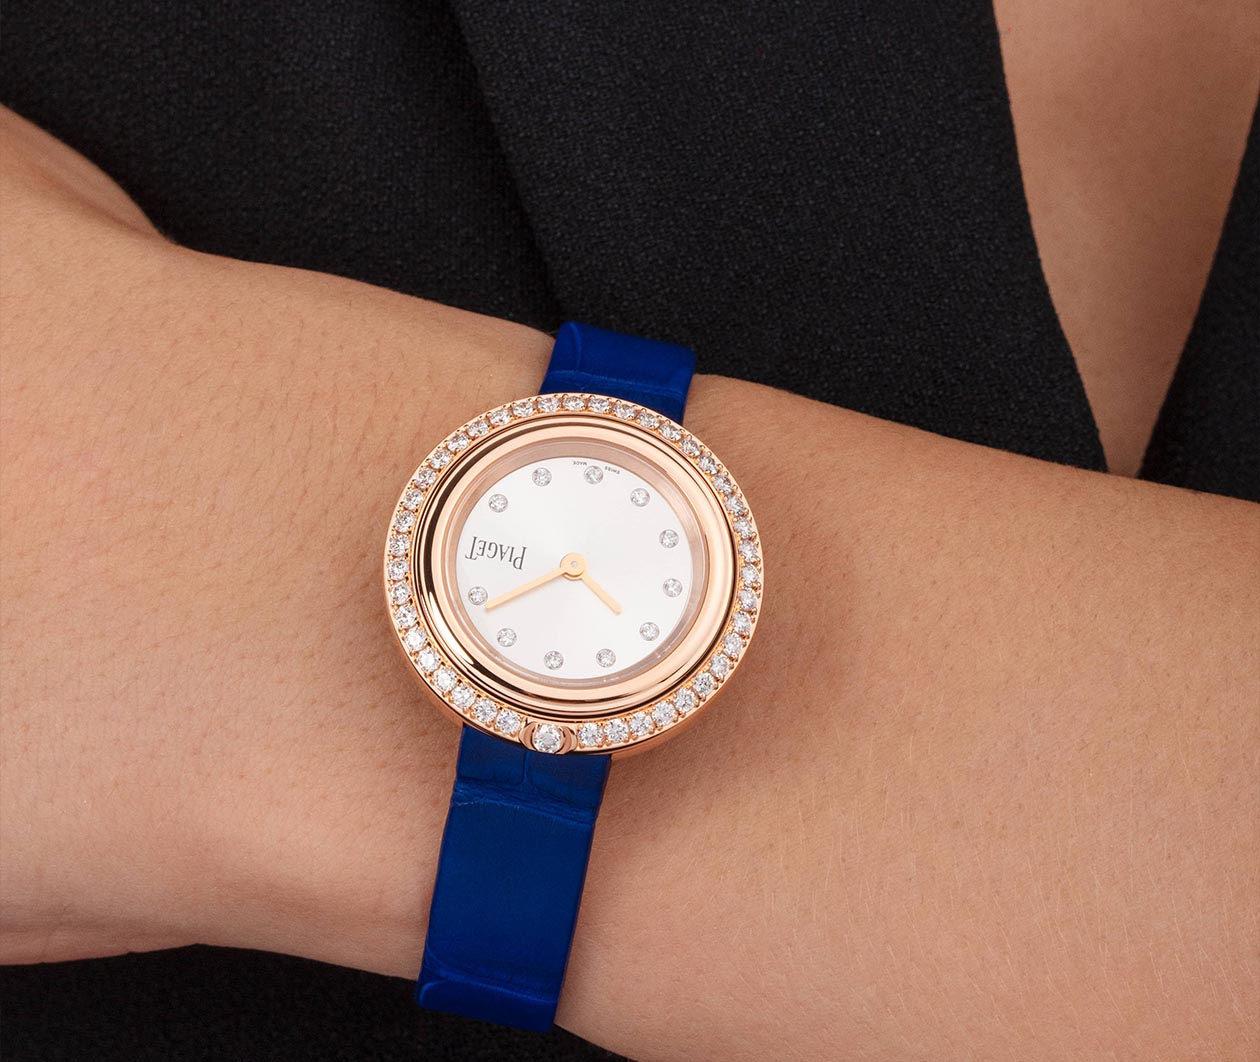 Piaget Possession watch G0A43082 Hover 2 FINAL